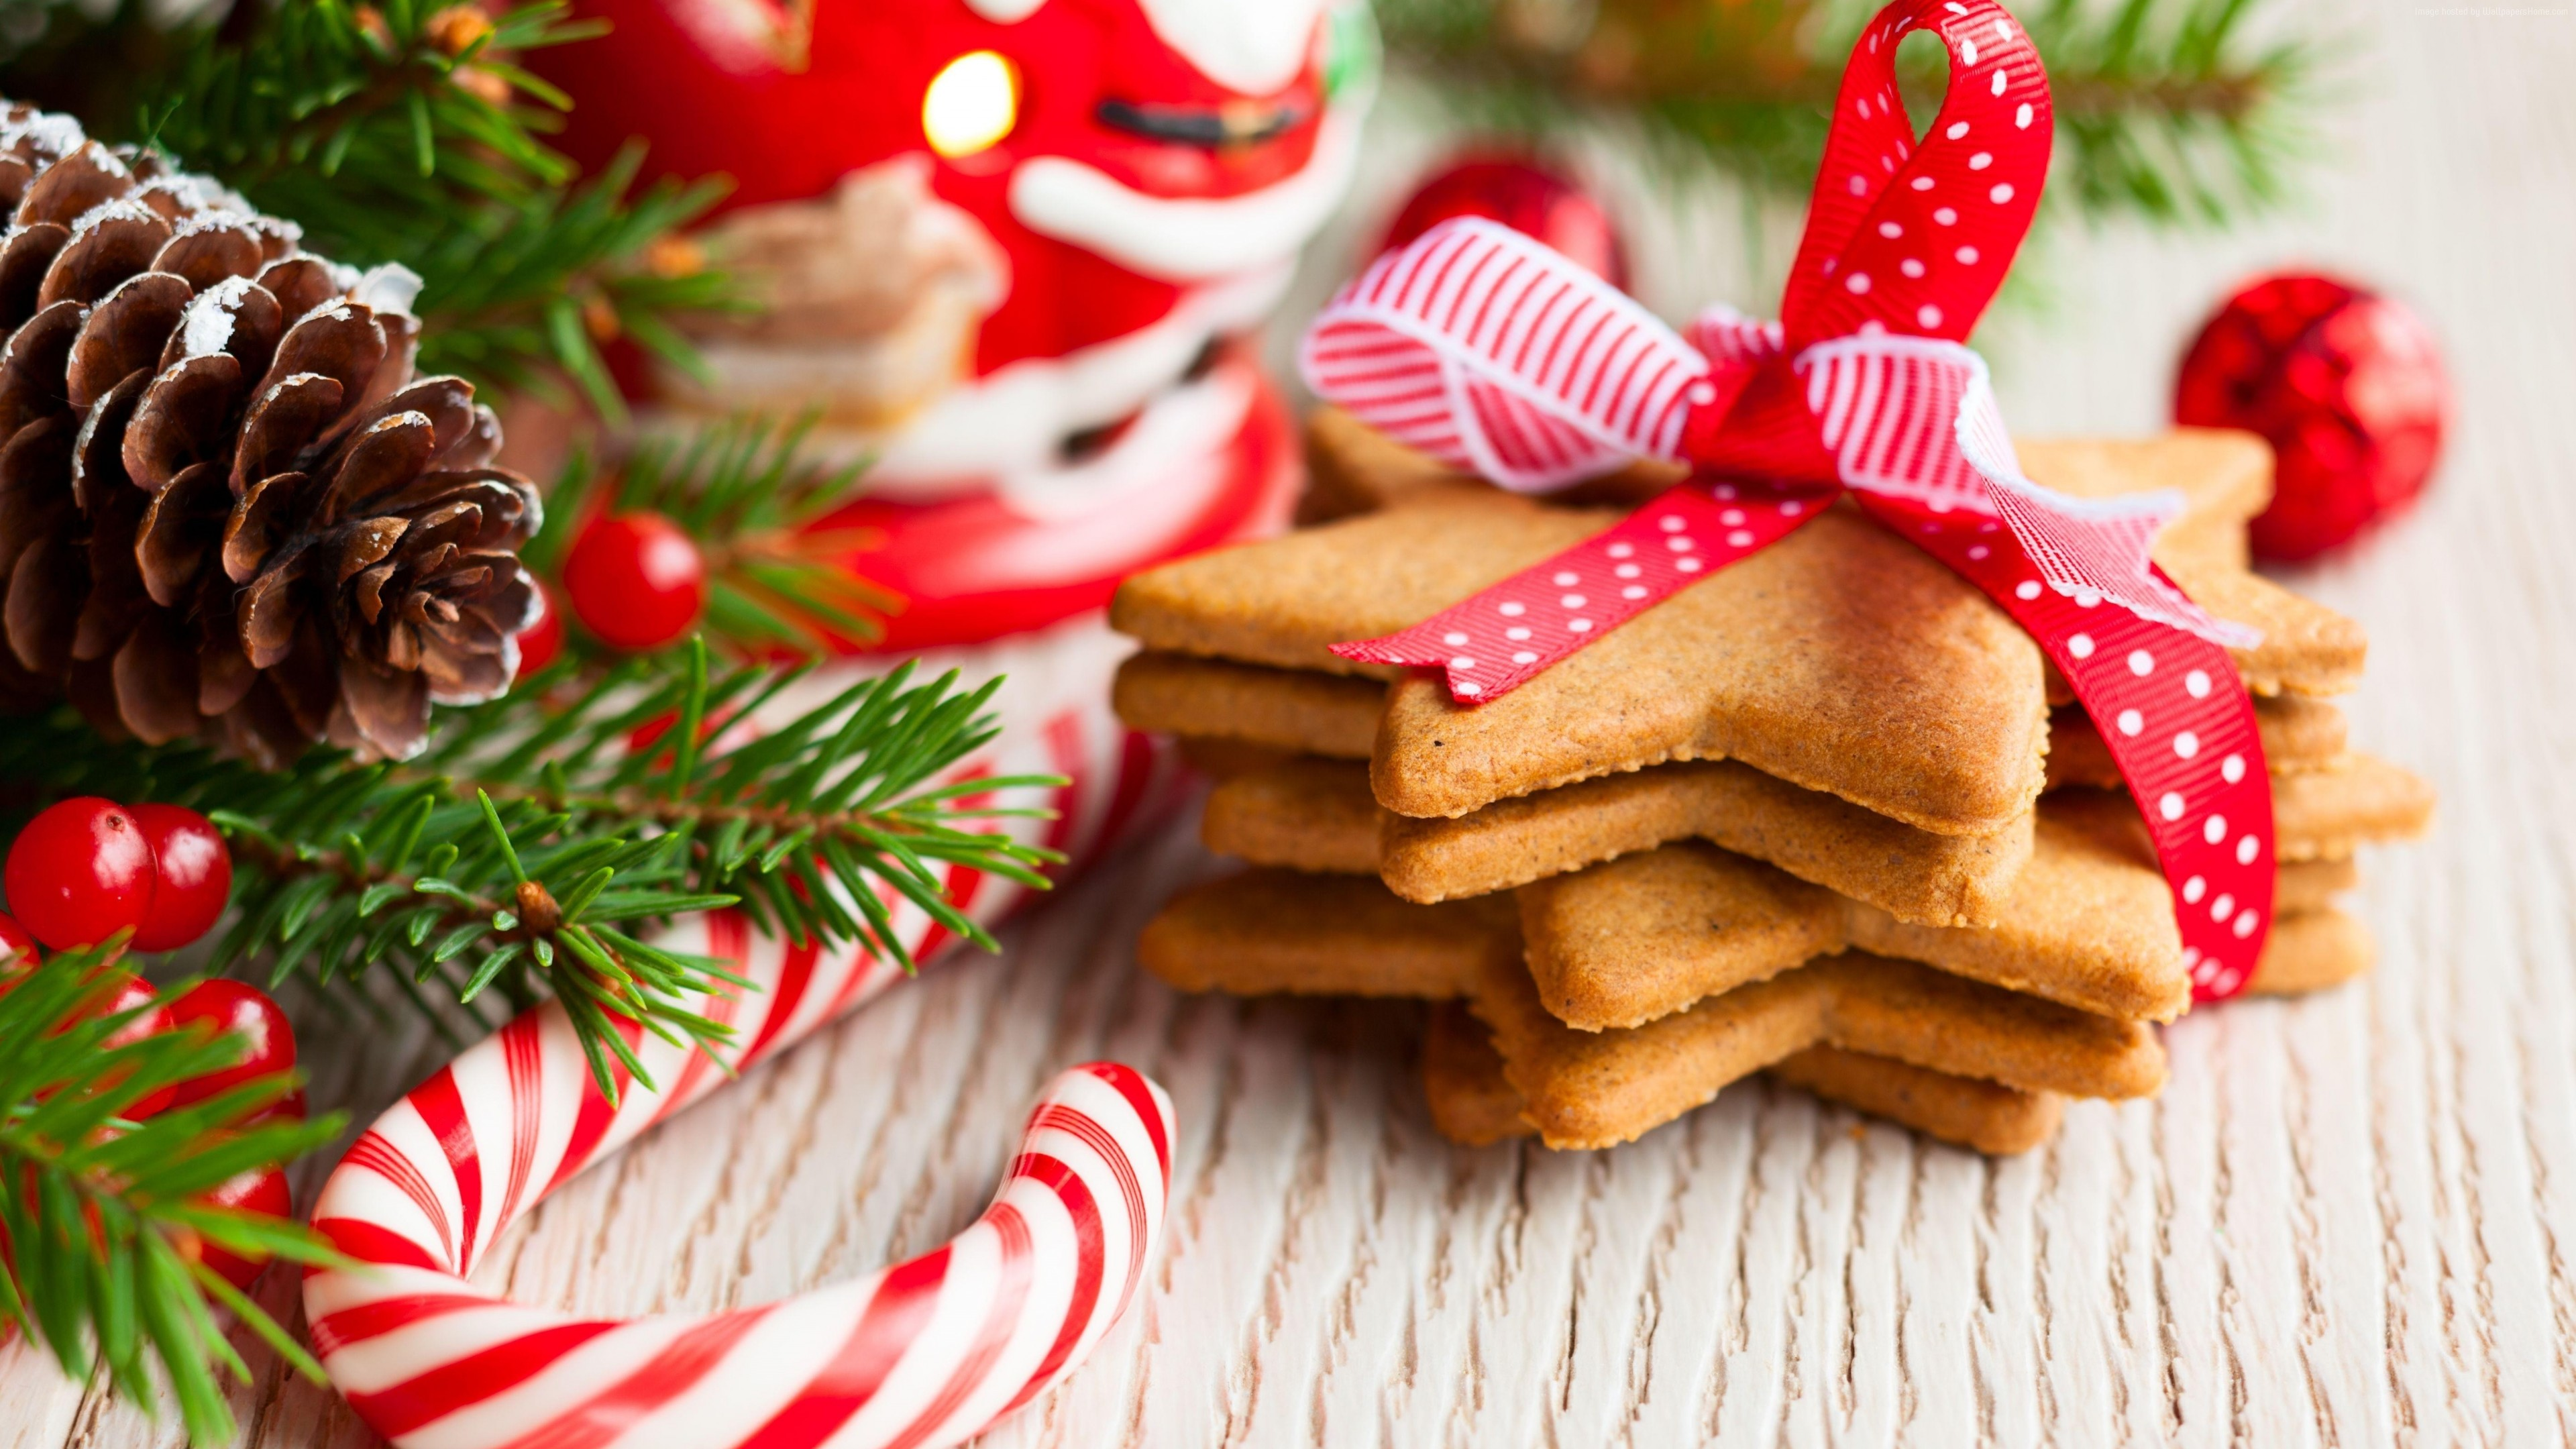 Wallpaper Christmas, New Year, cookies, candy, 5k, Holidays